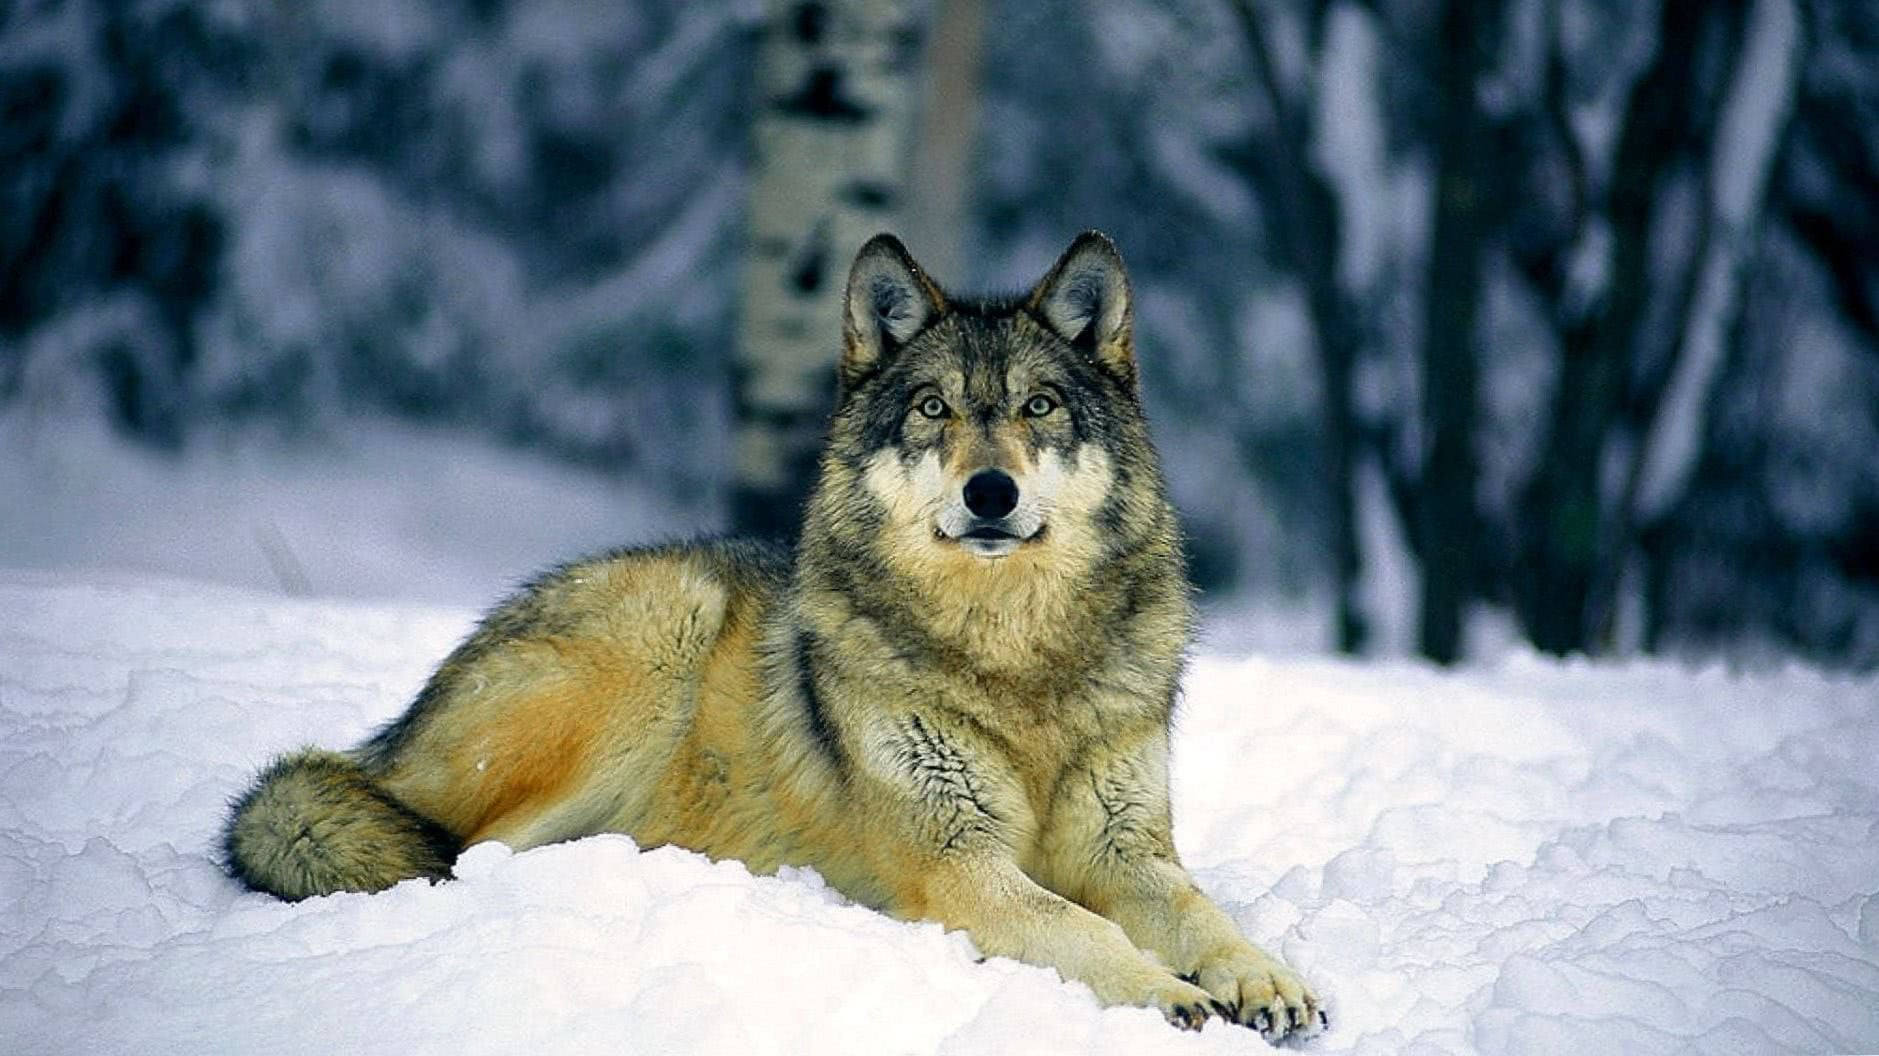 HD Wallpapers 1080p Of Wolf